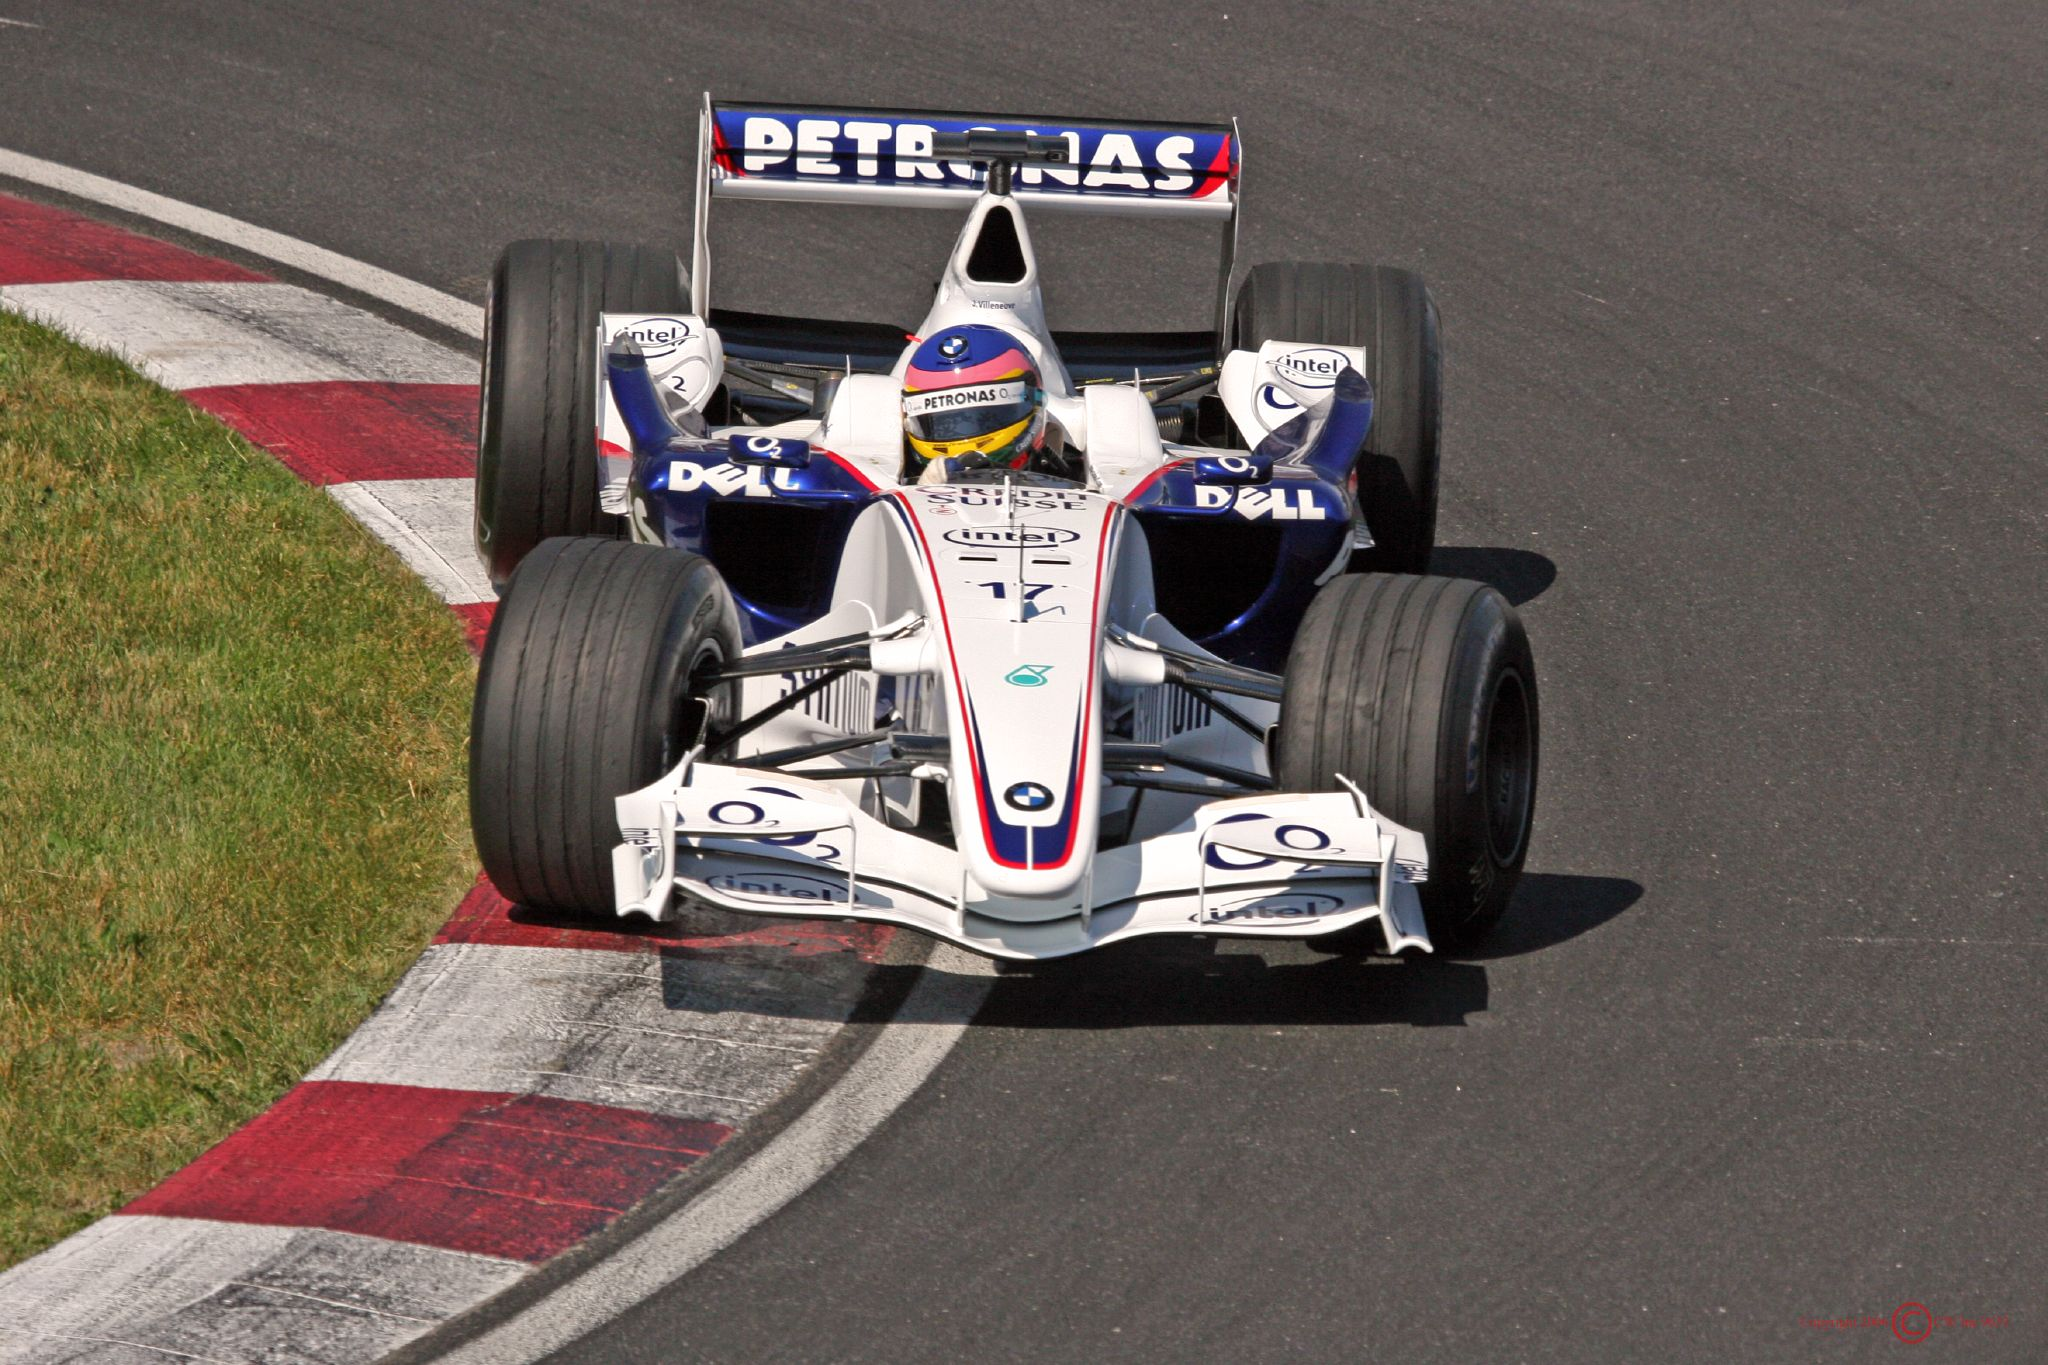 BMW first entered Formula One as a full-fledged team in 2006.